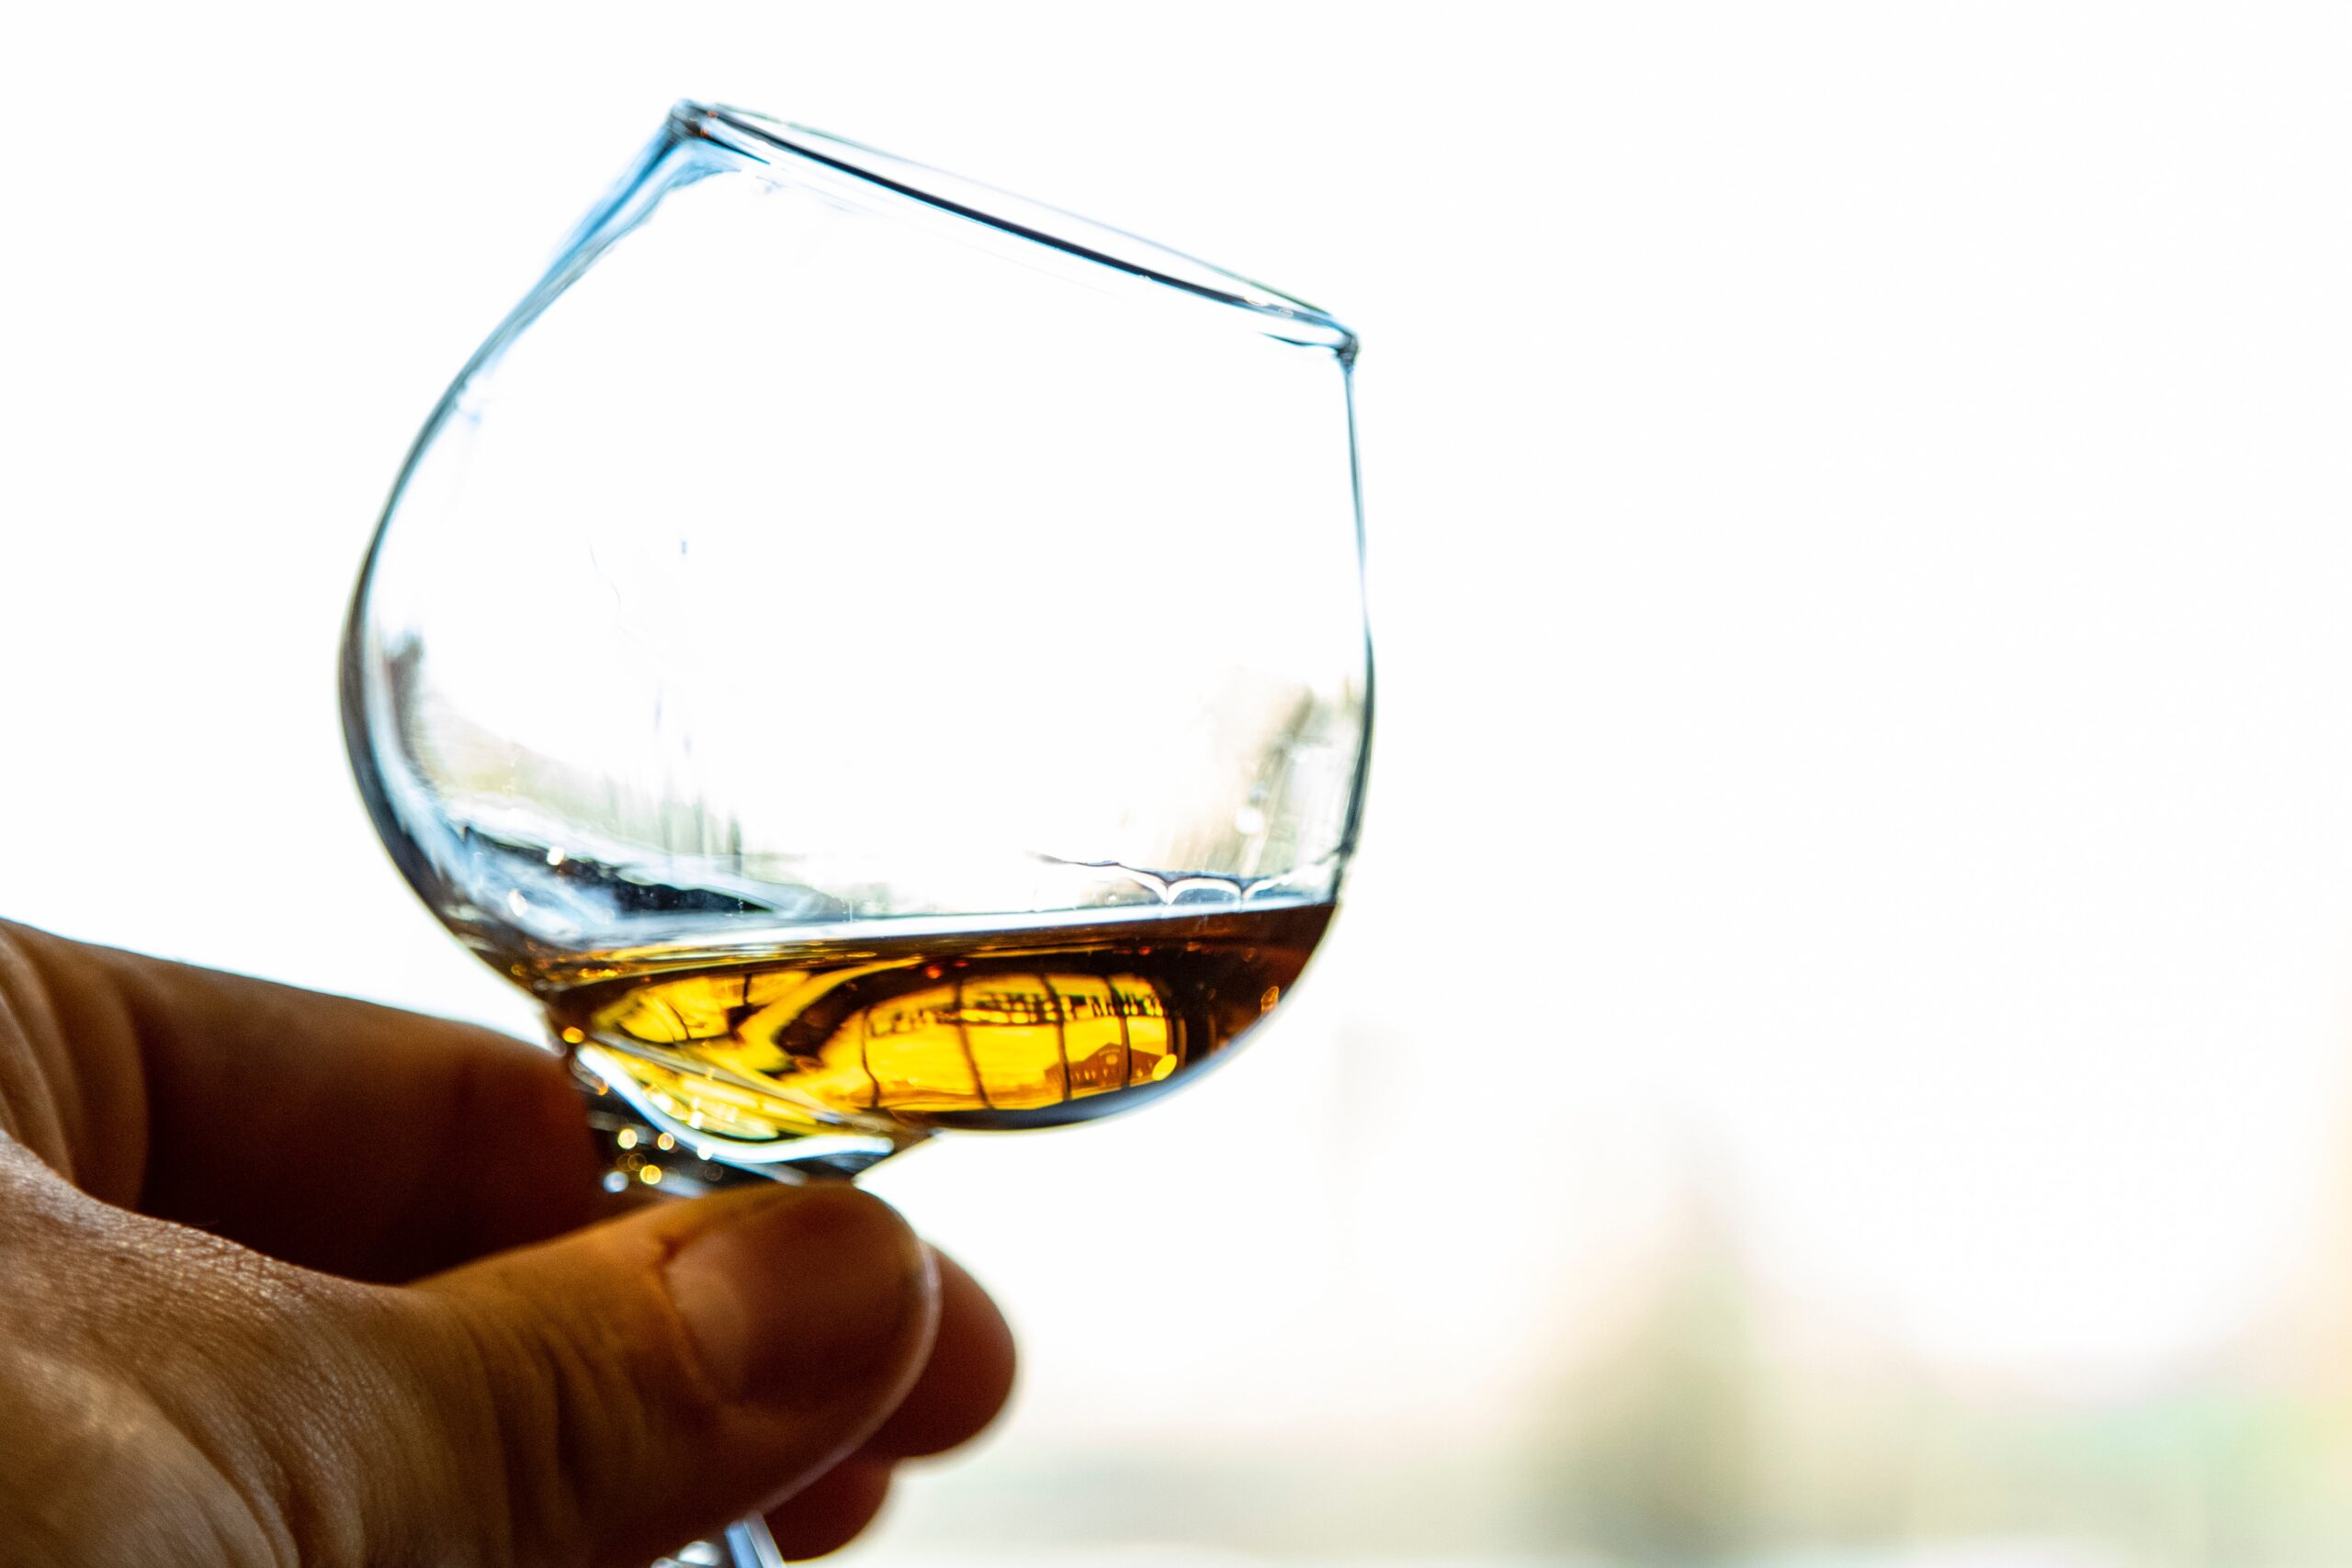 Limited edition launch gives whisky lovers once-in-a-lifetime chance to be part of a new Scotch legacy